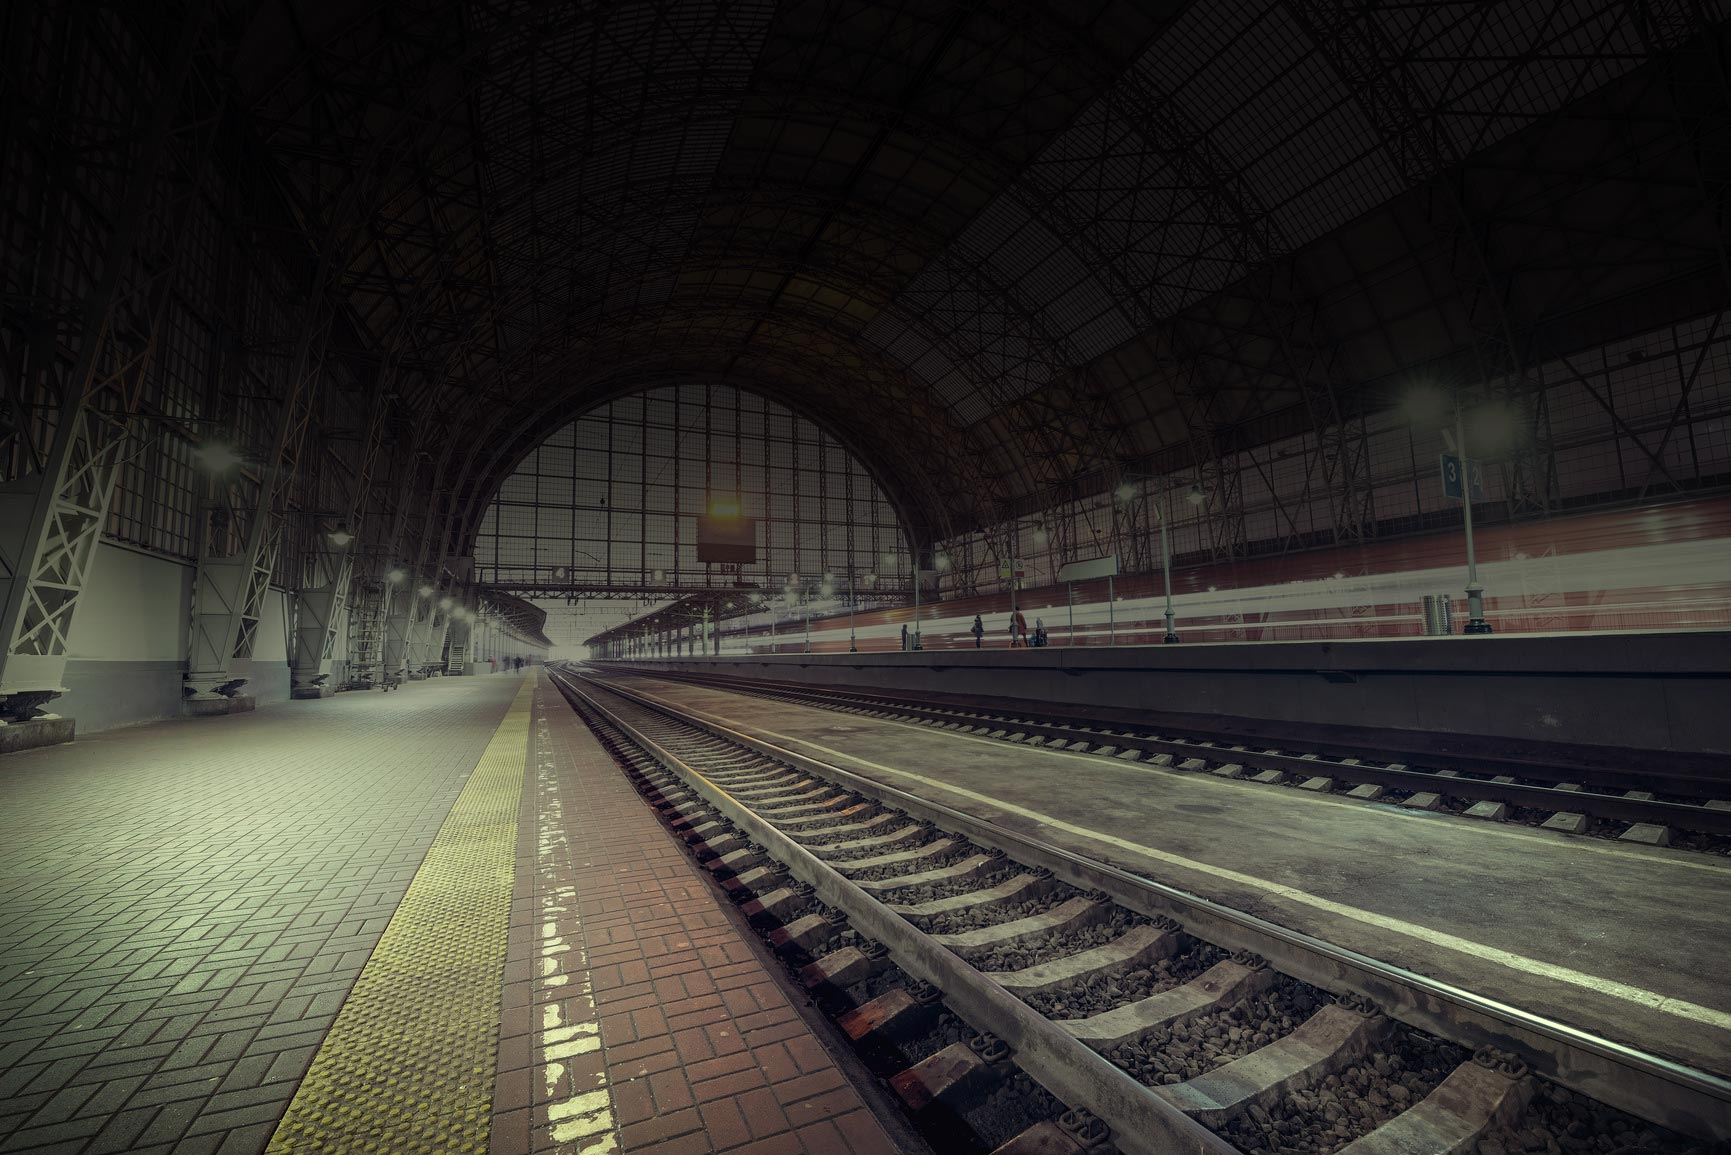 Railway-Dusk-edit3